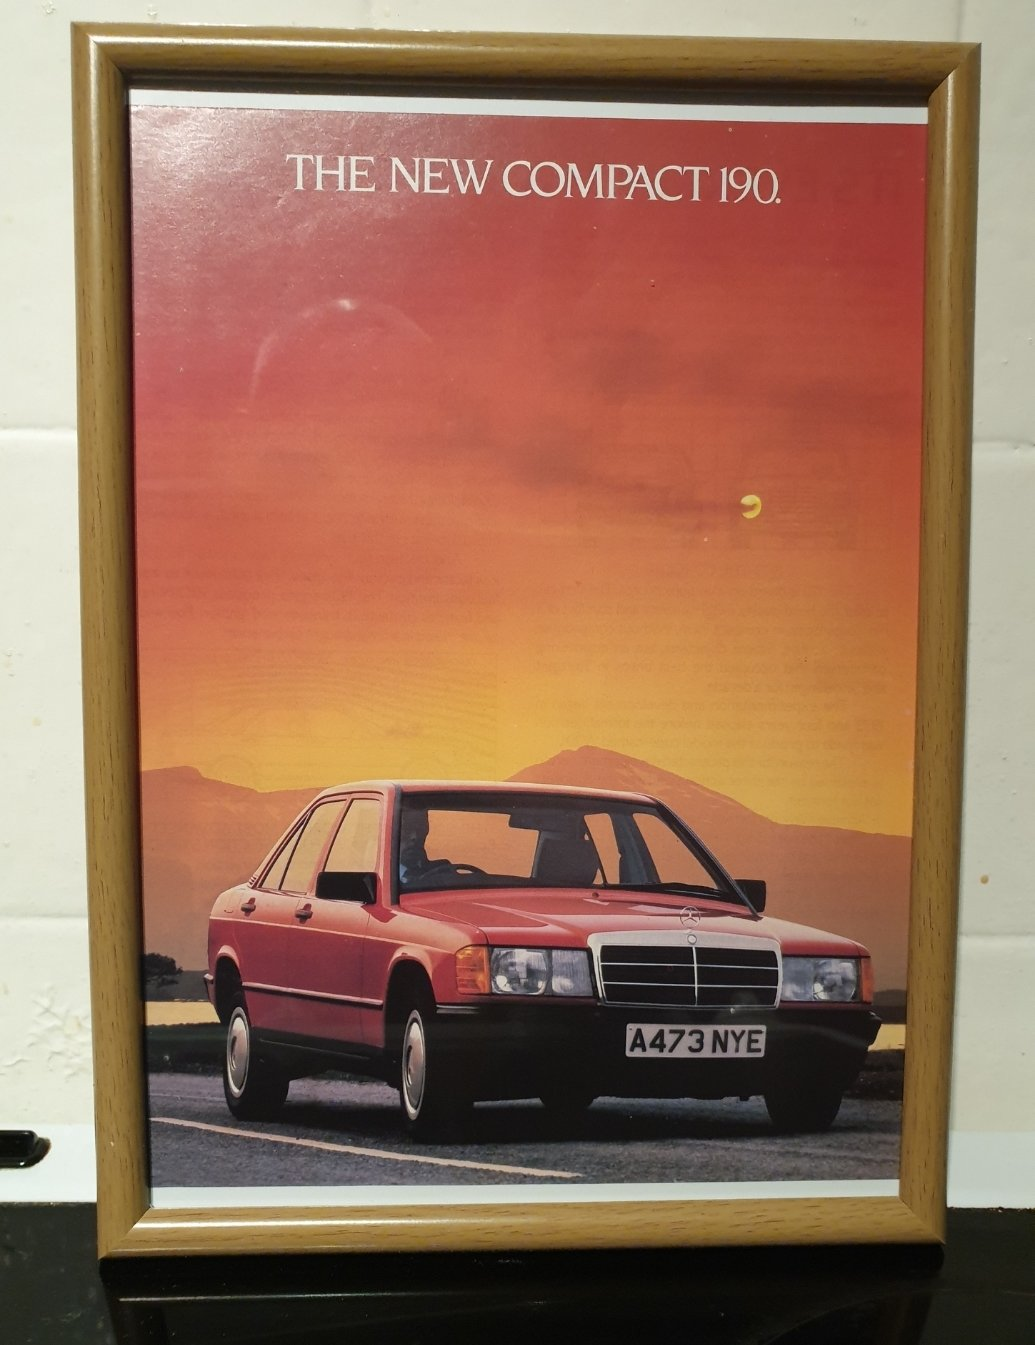 1983 Merc 190 Framed Advert Original  For Sale (picture 1 of 2)